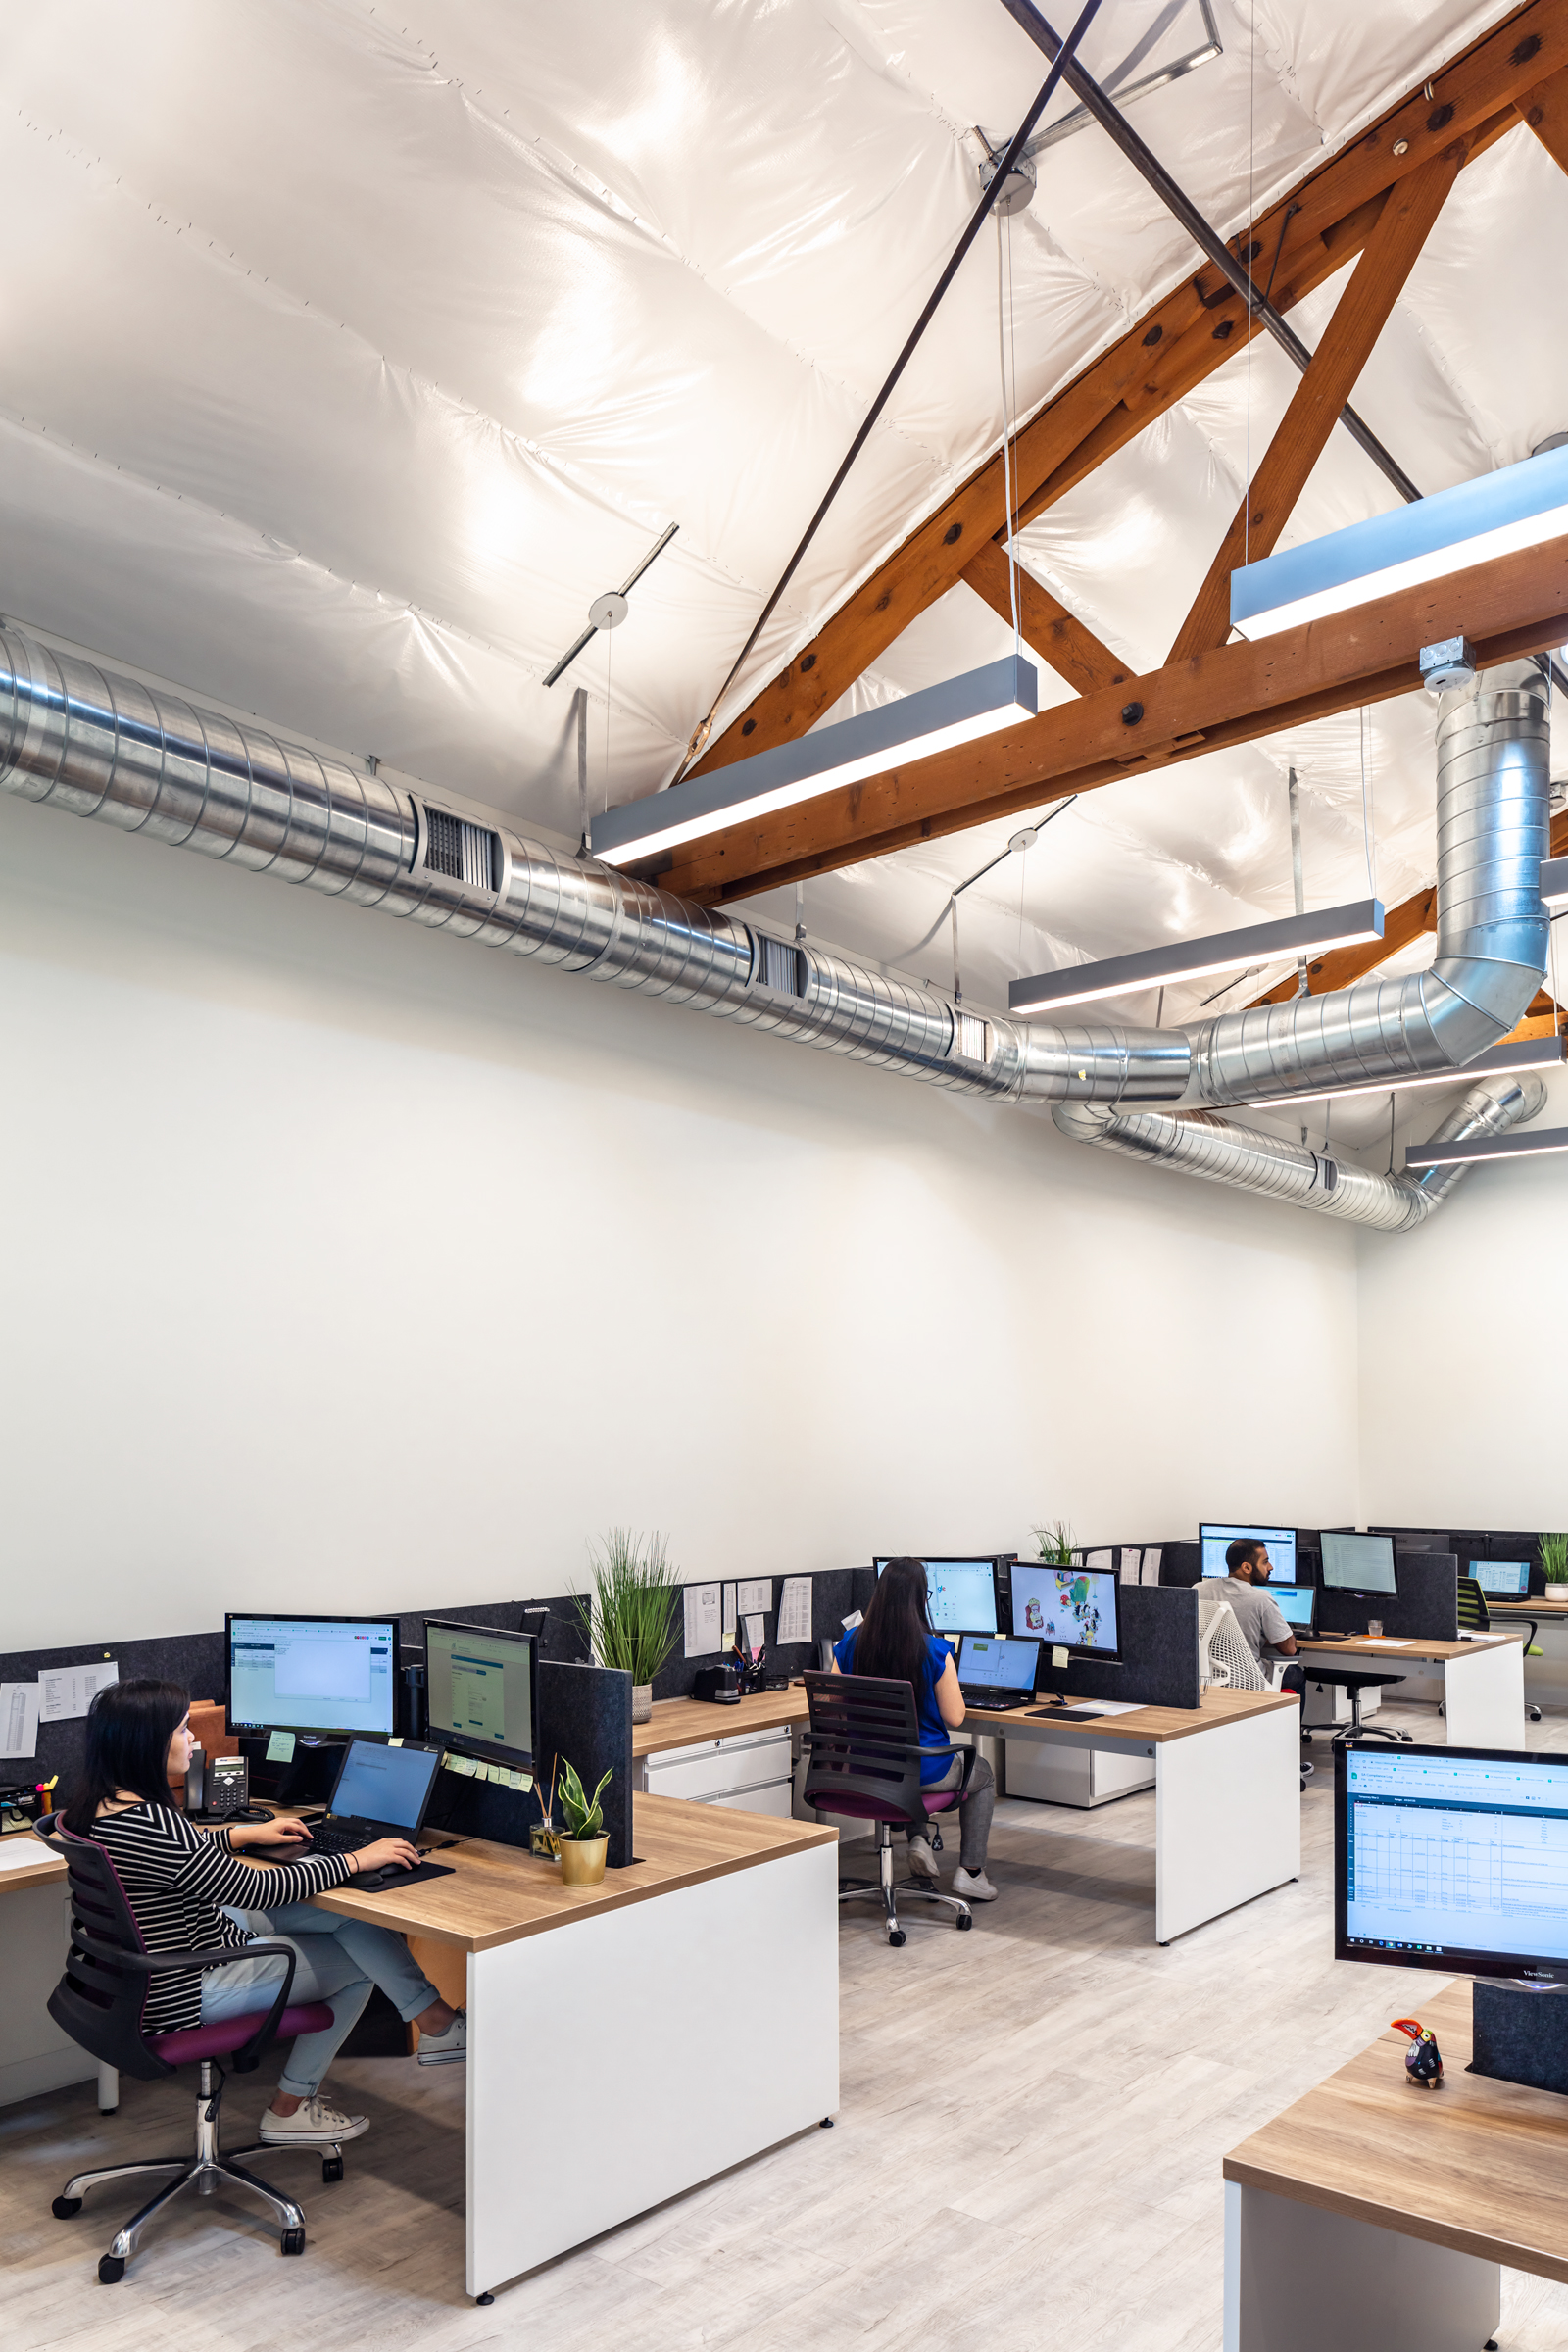 The open plan workstations benefiting from the dramatic space above